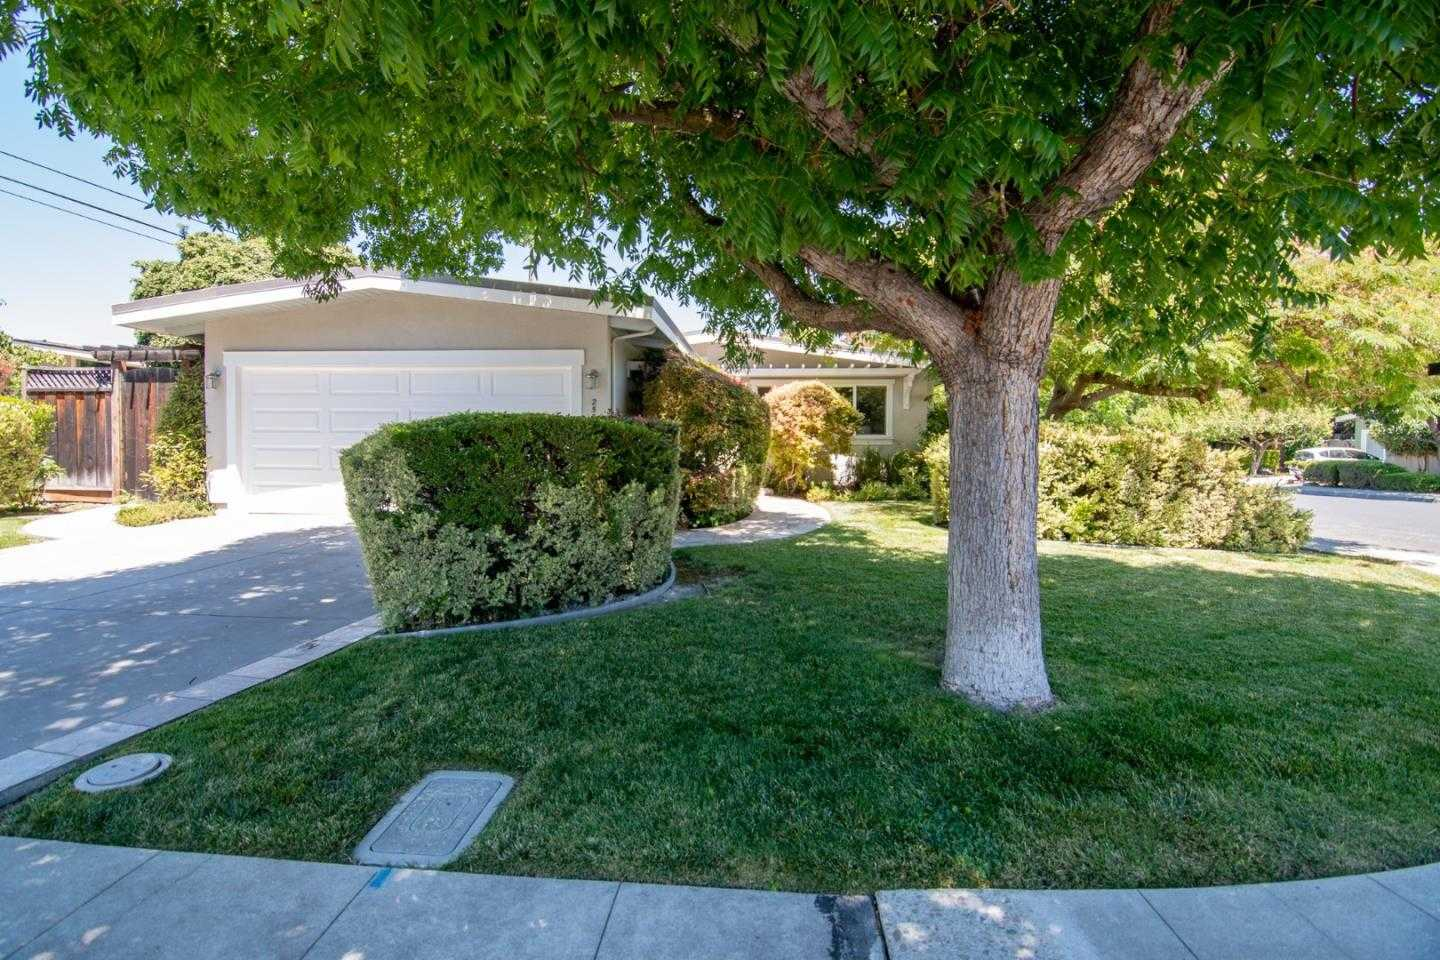 $1,749,000 - 3Br/2Ba -  for Sale in Mountain View